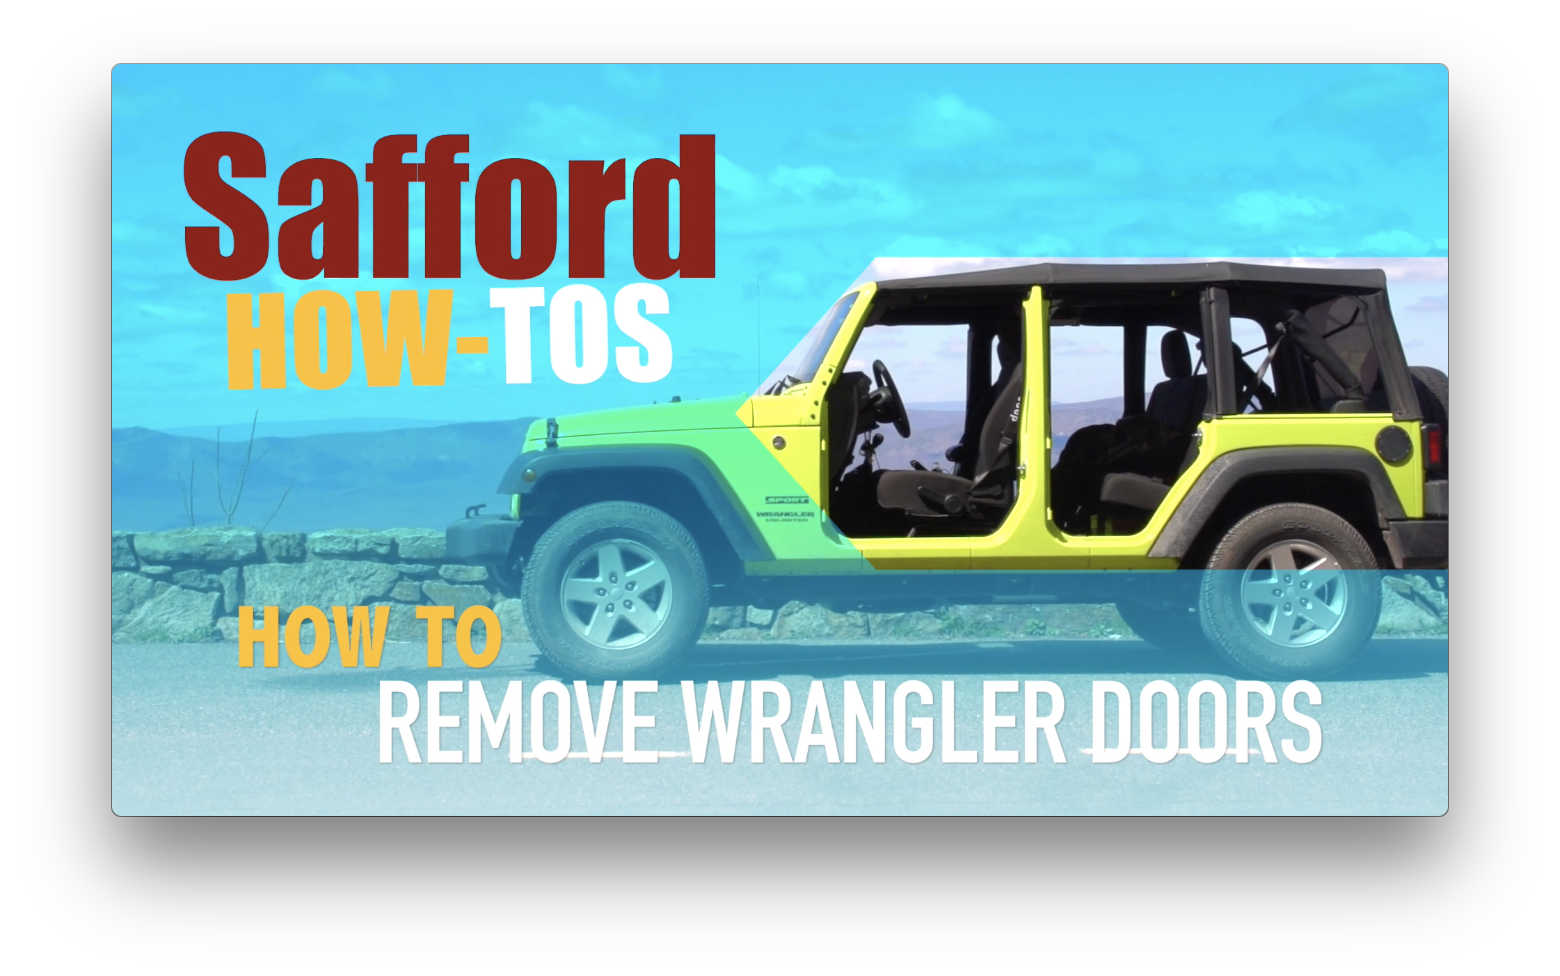 Wrangler Door Removal